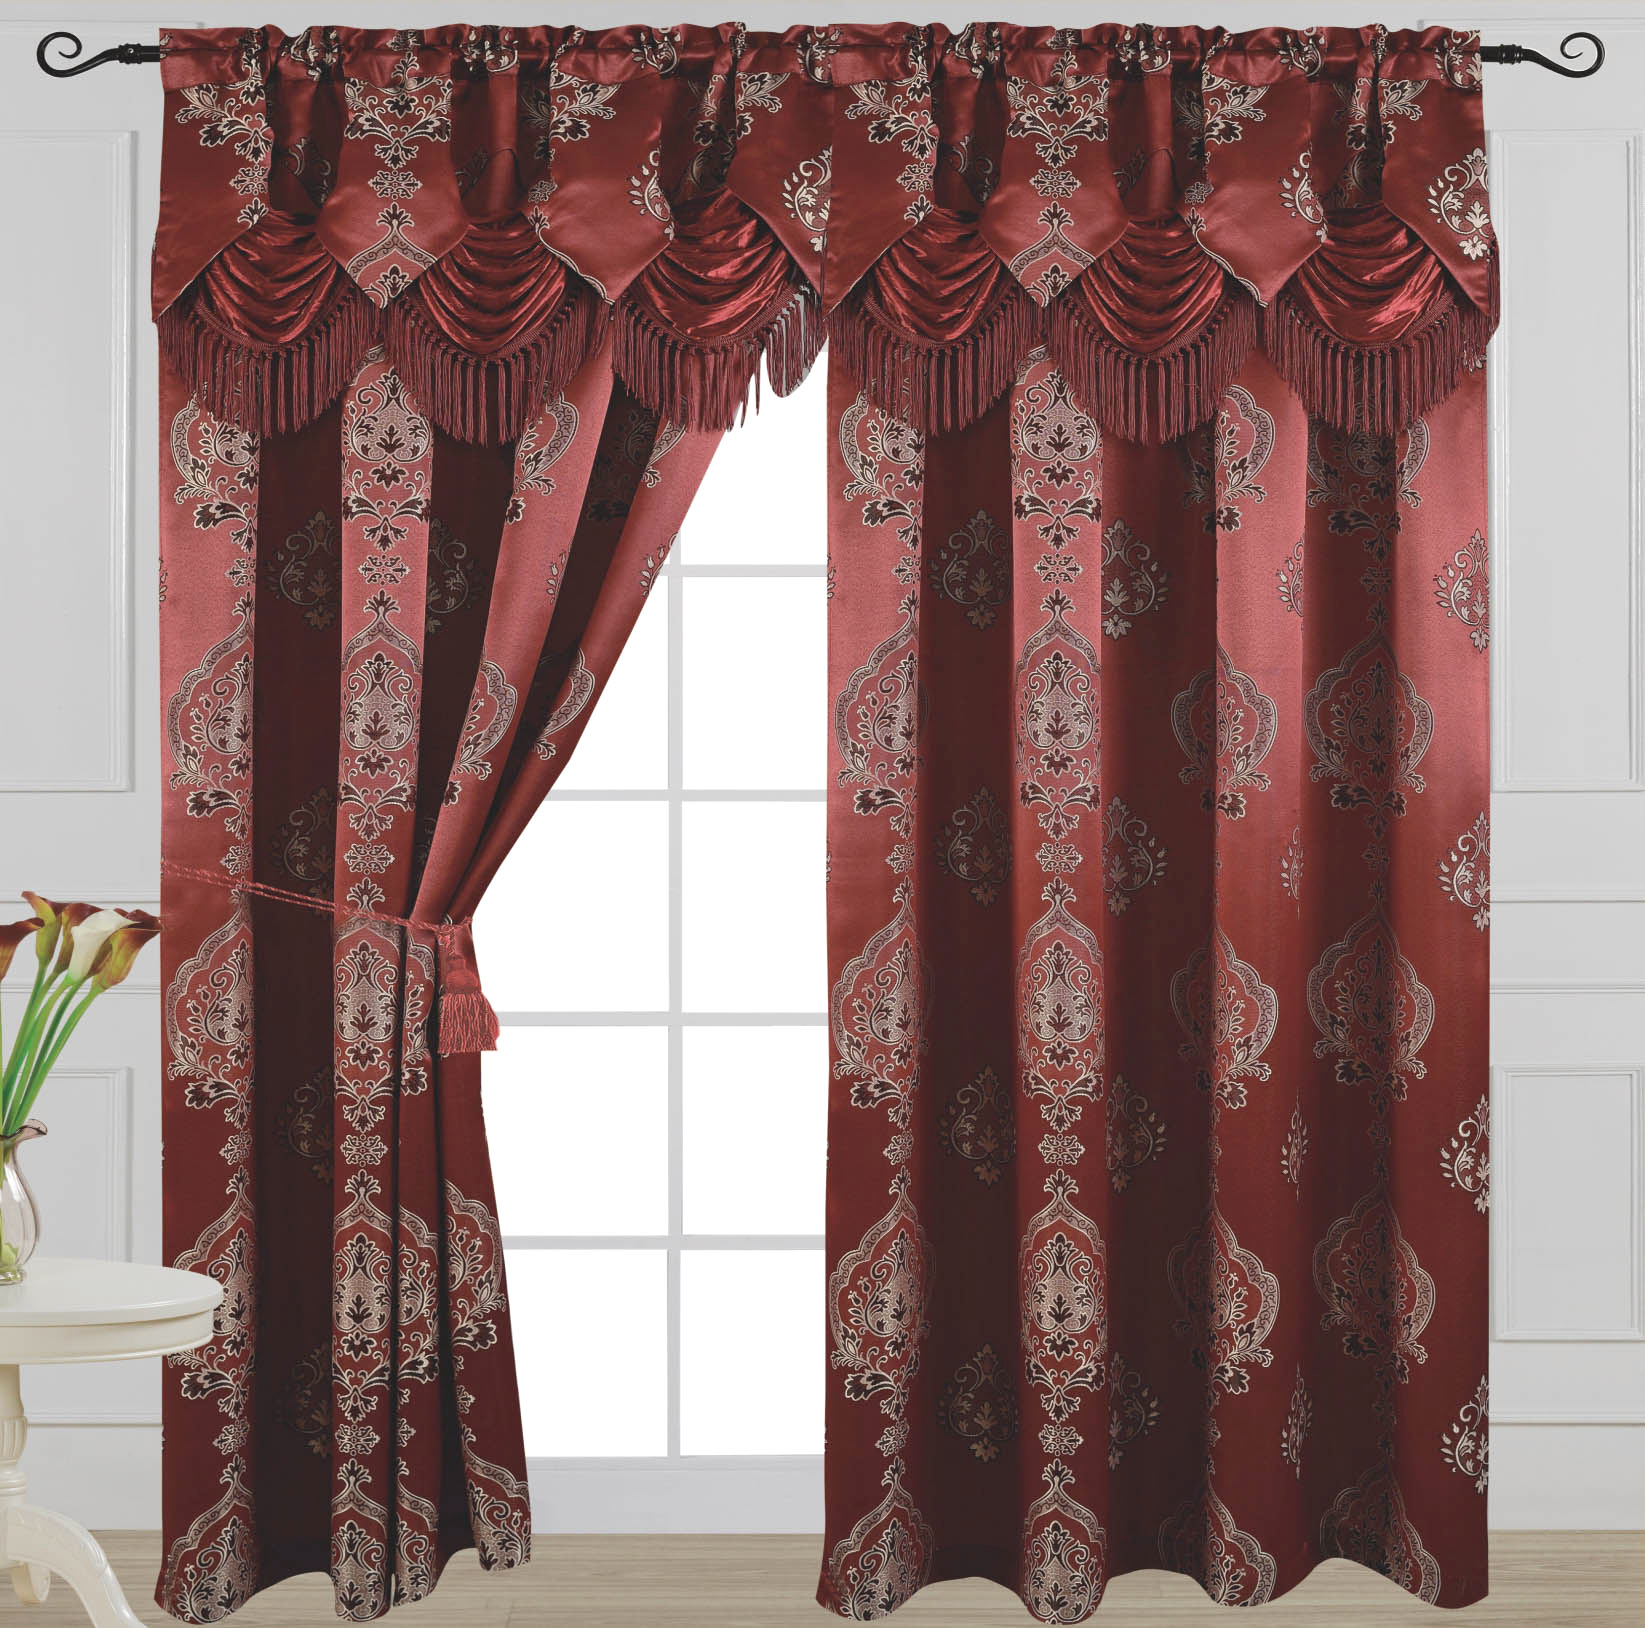 Luxury Jacquard Curtain Panel With Attached Waterfall Valance, 54 84 Inch Alexa Burgundy Inside Luxury Light Filtering Straight Curtain Valances (View 19 of 20)